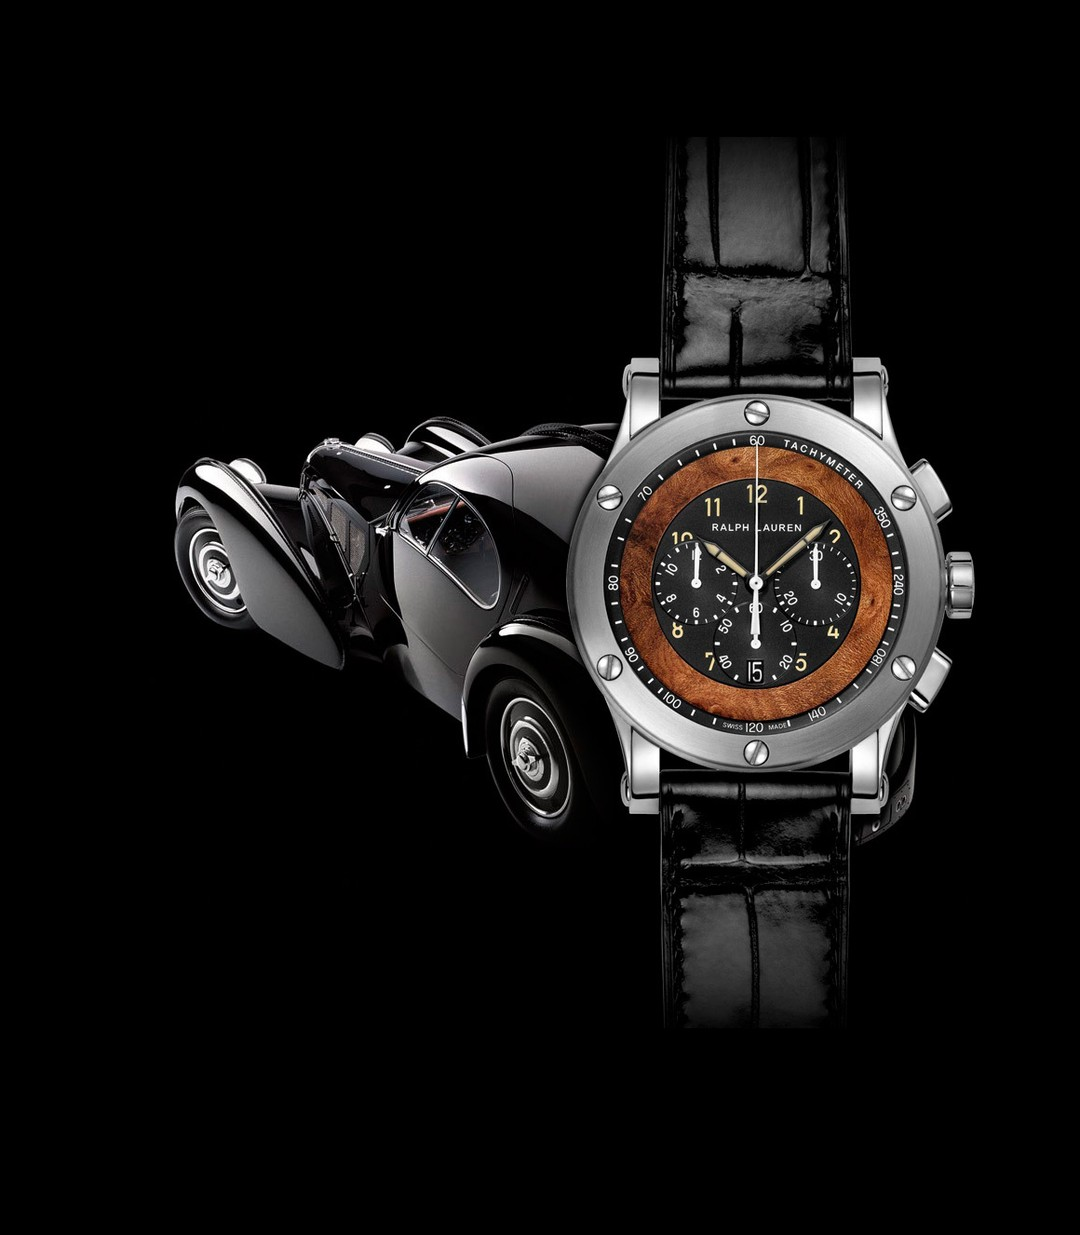 The Ralph Lauren Sporting watch collection has just welcomed a new thoroughbred to its stable with a racy chronograph model that bridges the designer's love of cars and watches.